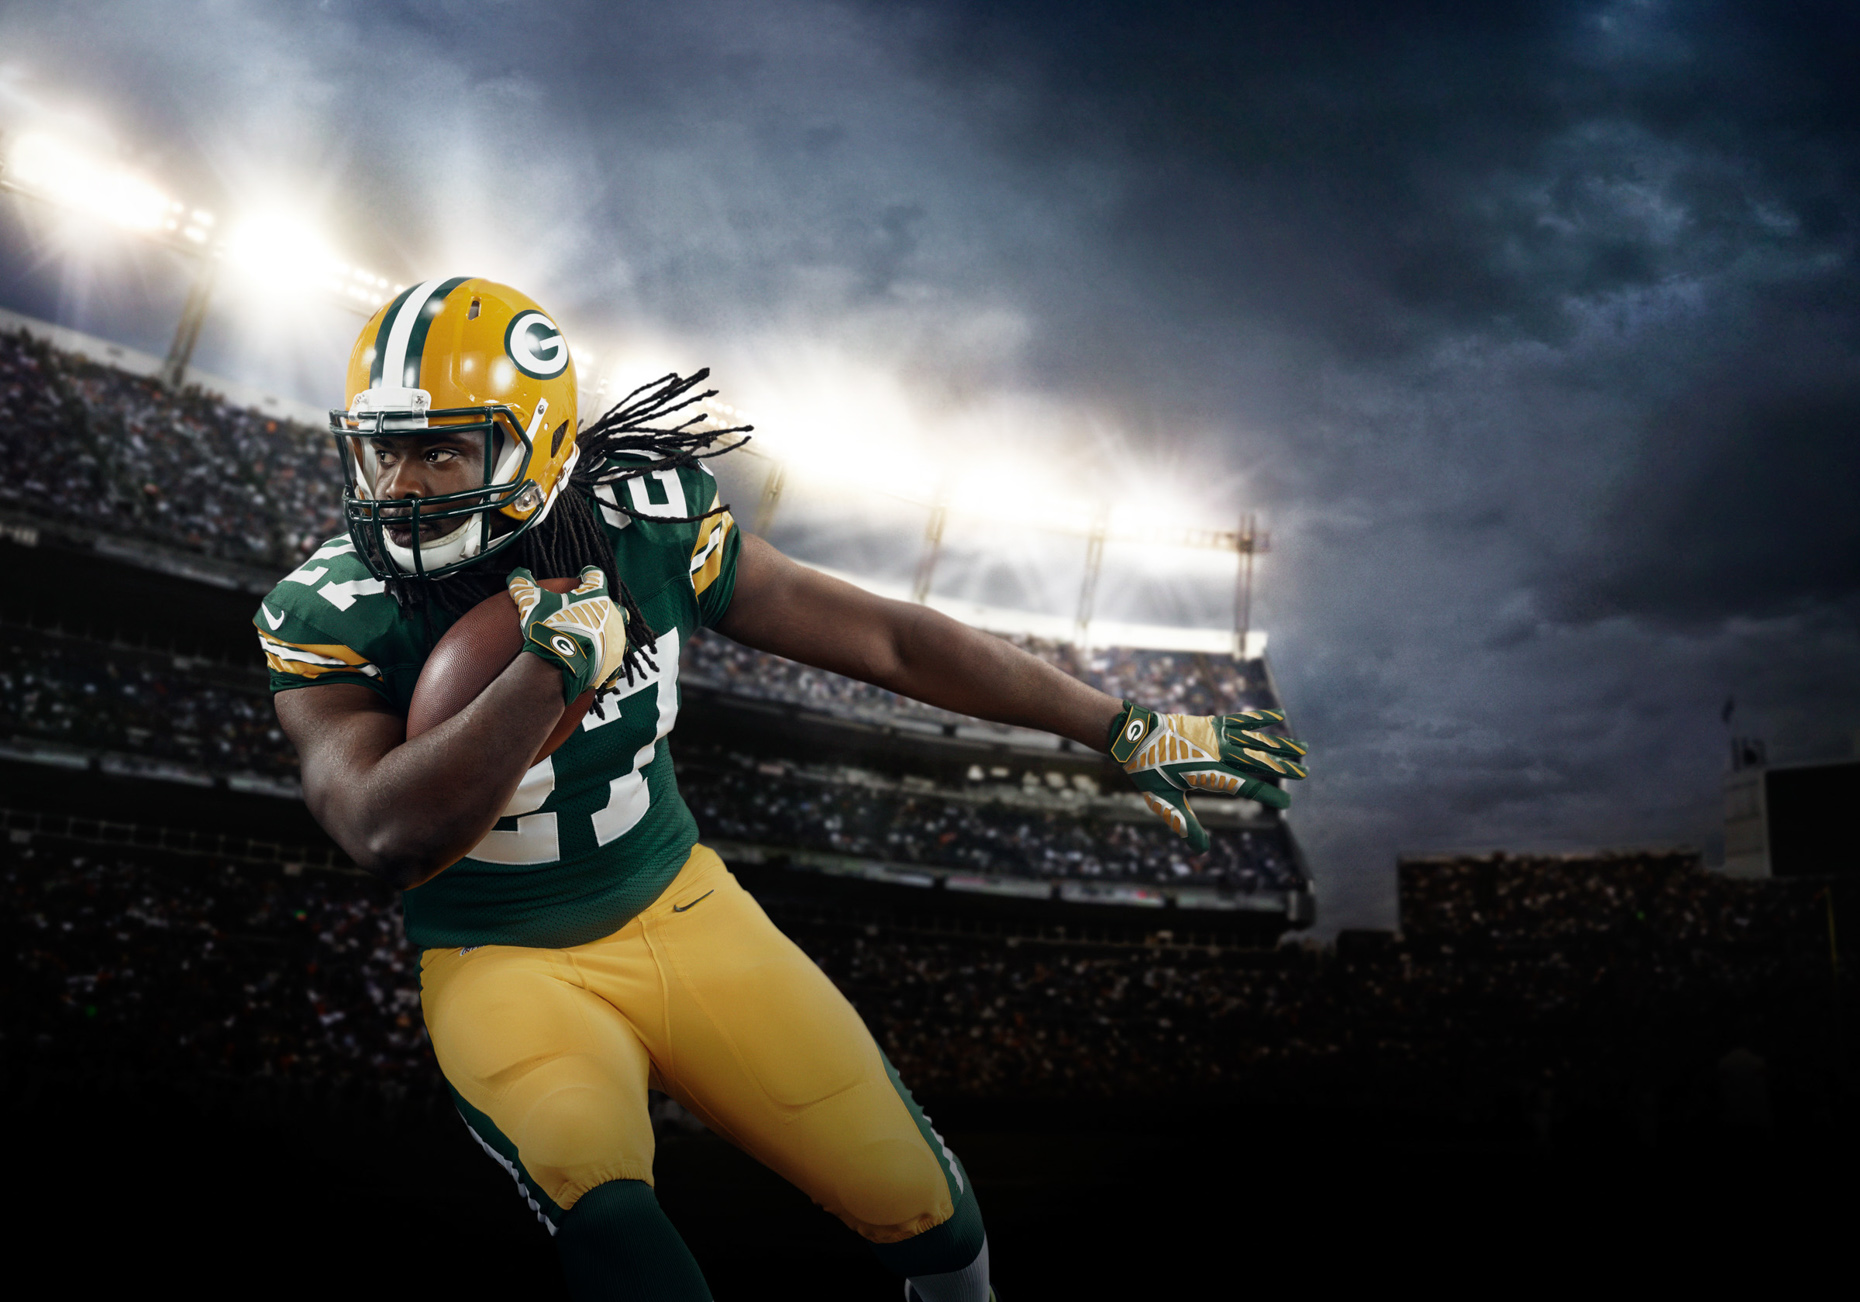 Greenbay Packer Eddie Lacy for Verizon NFL football